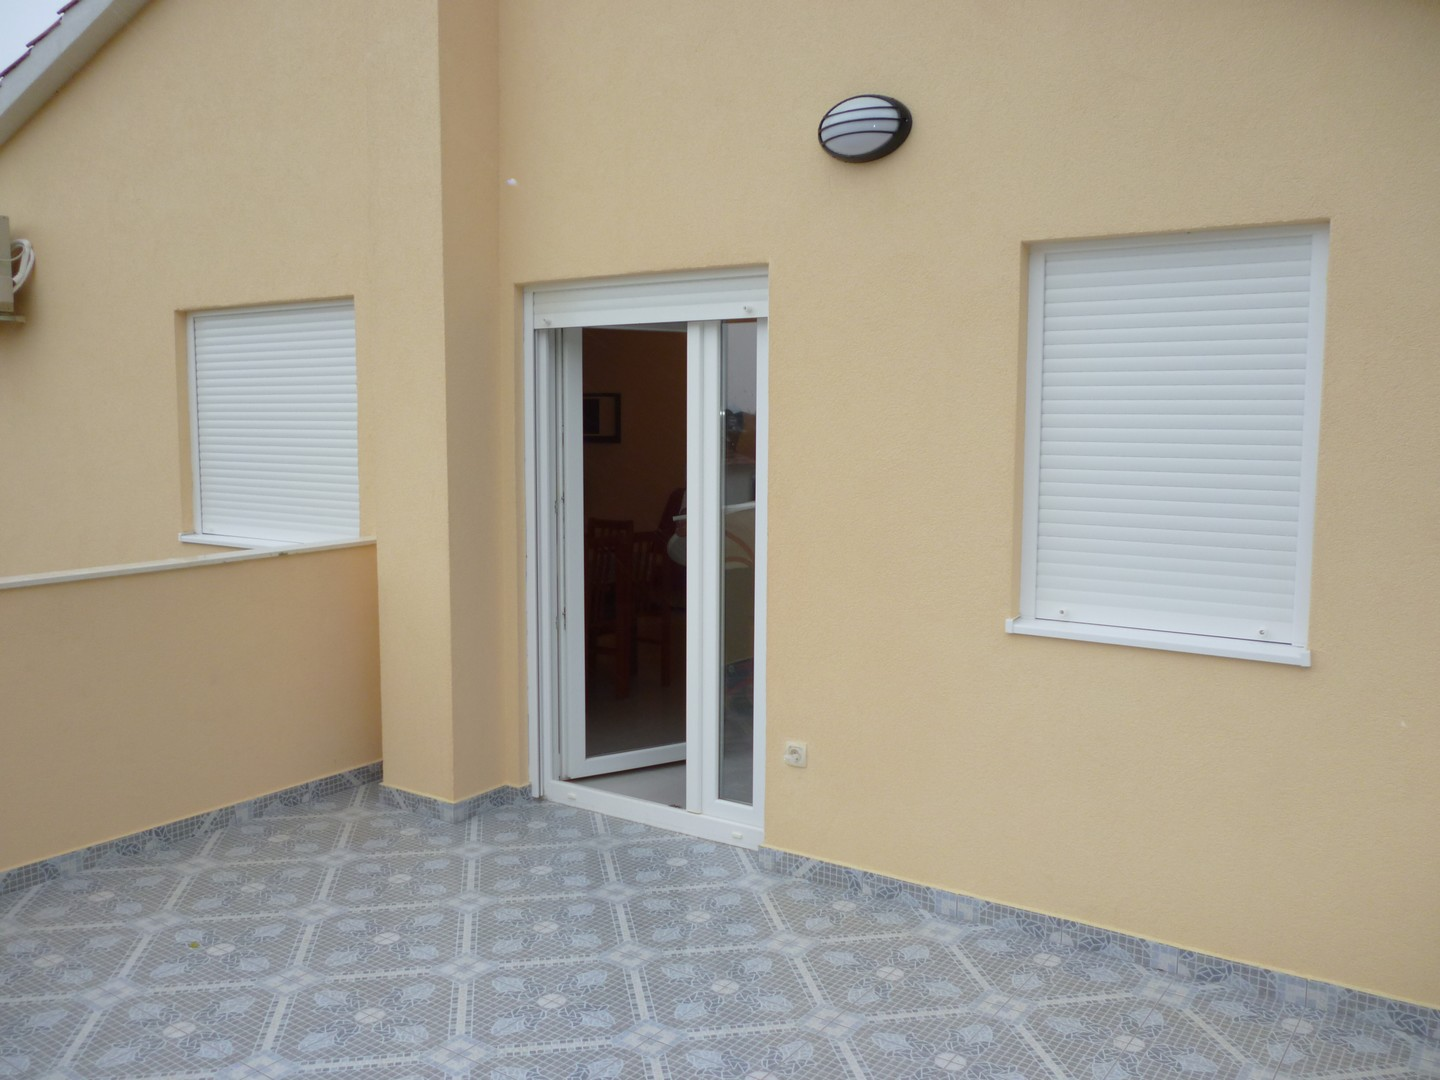 Tisno,ŠIBENSKO-KNINSKA,CROATIA 22240,1 Bedroom Bedrooms,1 BathroomBathrooms,Apartment,1,1001